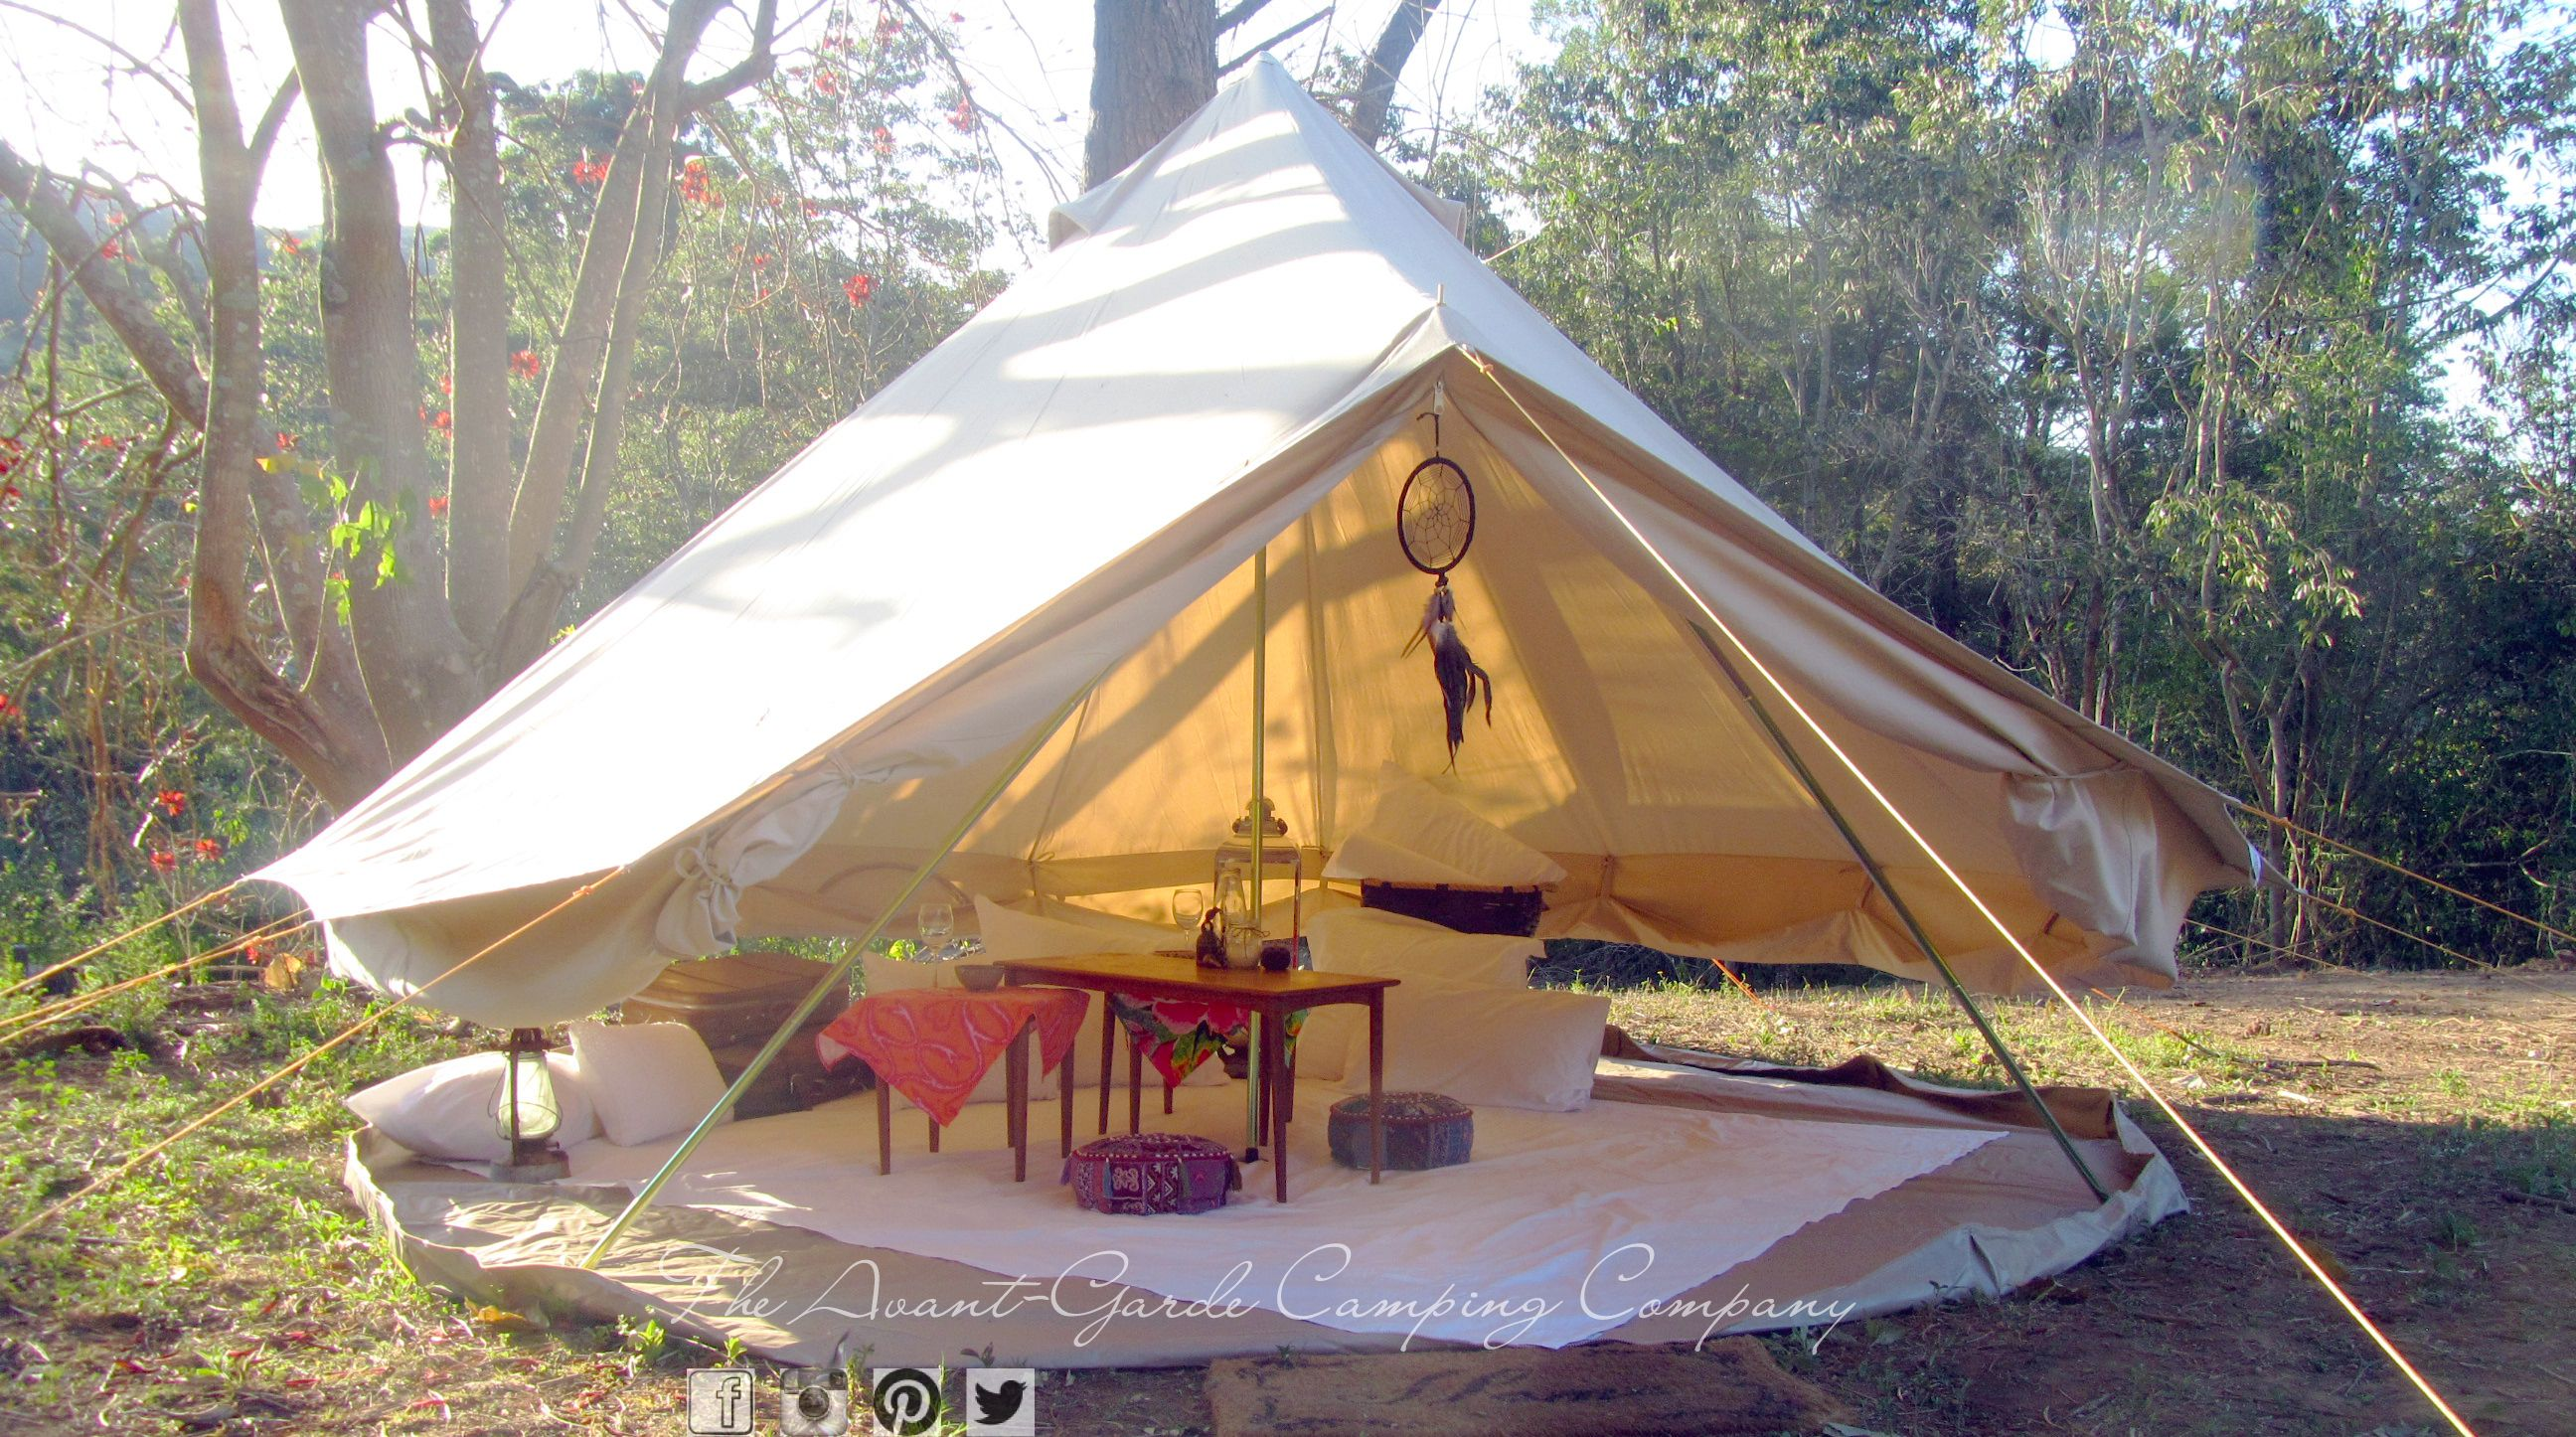 The Avant-Garde C&ing Company Bell Tent for Hire (sides rolled up for picnic) Styled by The Avant-Garde C&ing Company & The Avant-Garde Camping Company 4m Bell Tent for Hire (sides ...